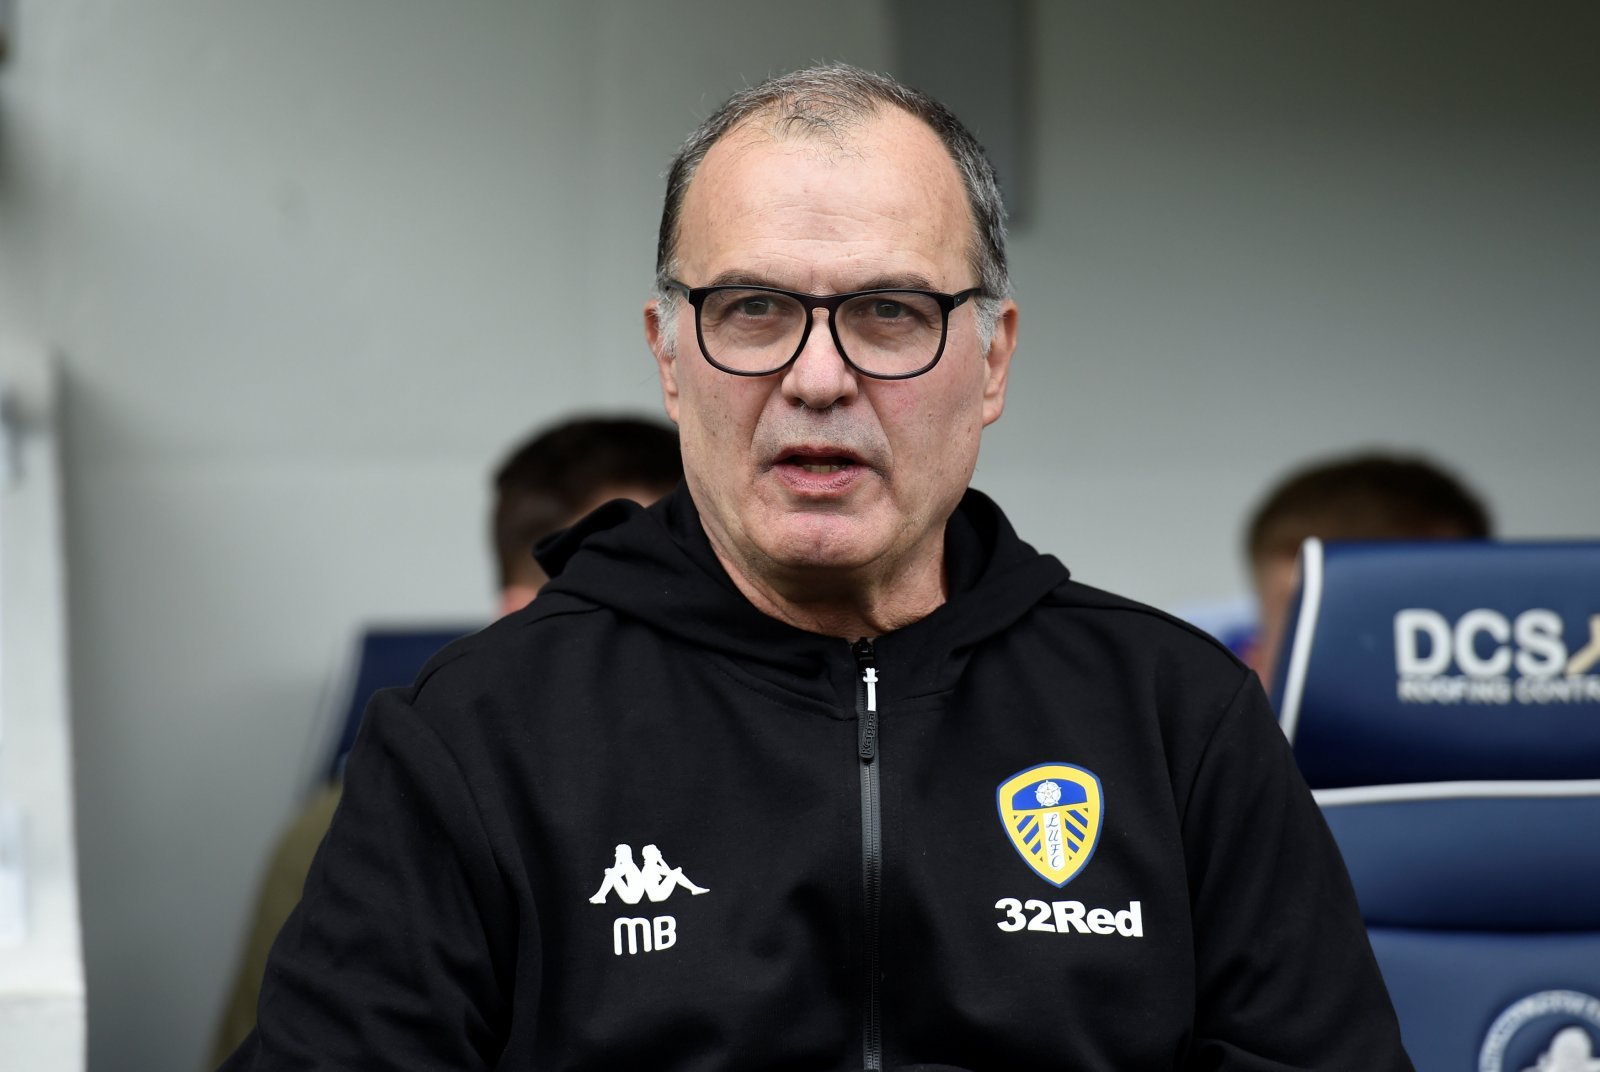 Massive 95% of Leeds fans rate their team ahead of Middlesbrough's promotion winners